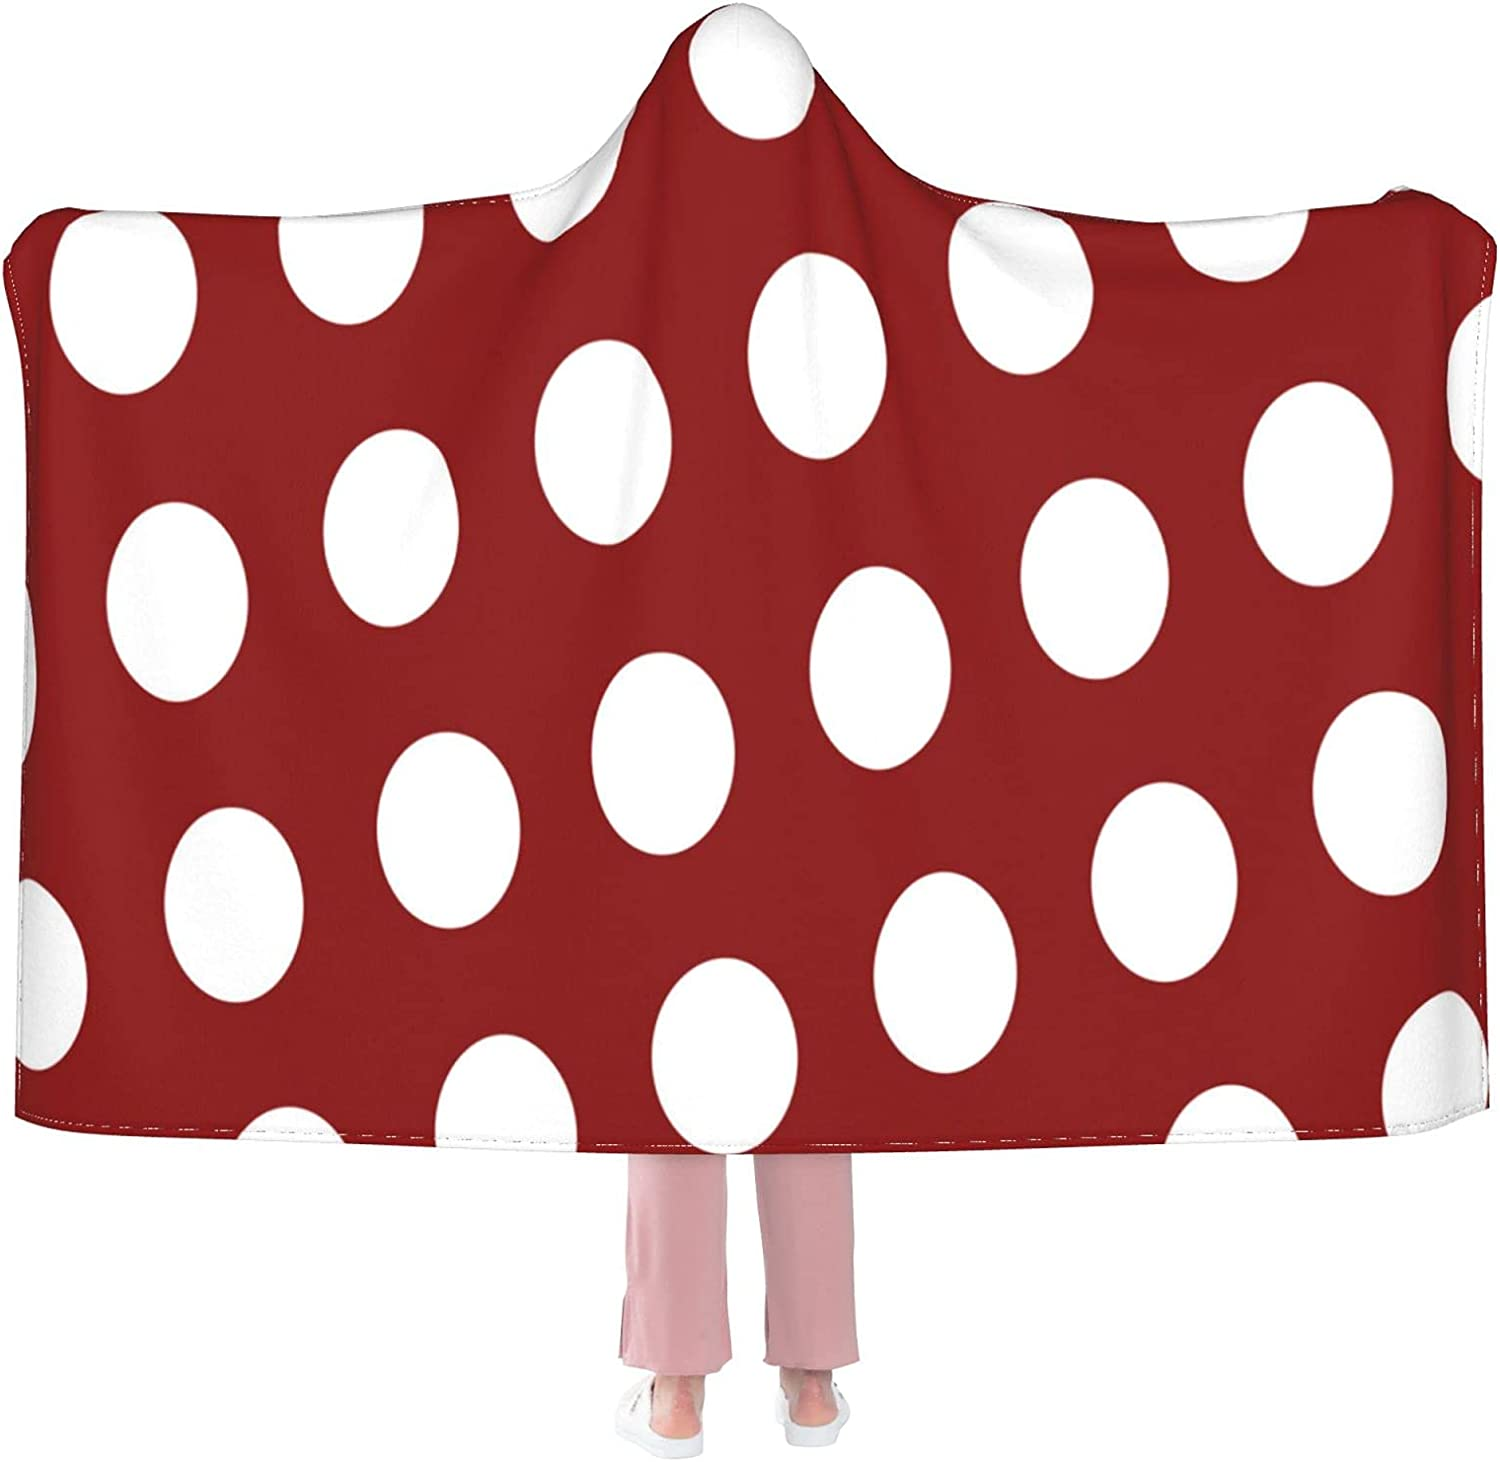 Red Virginia Beach Mall and White Polka Dot Hooded Wearable Blanket Mail order Flannel